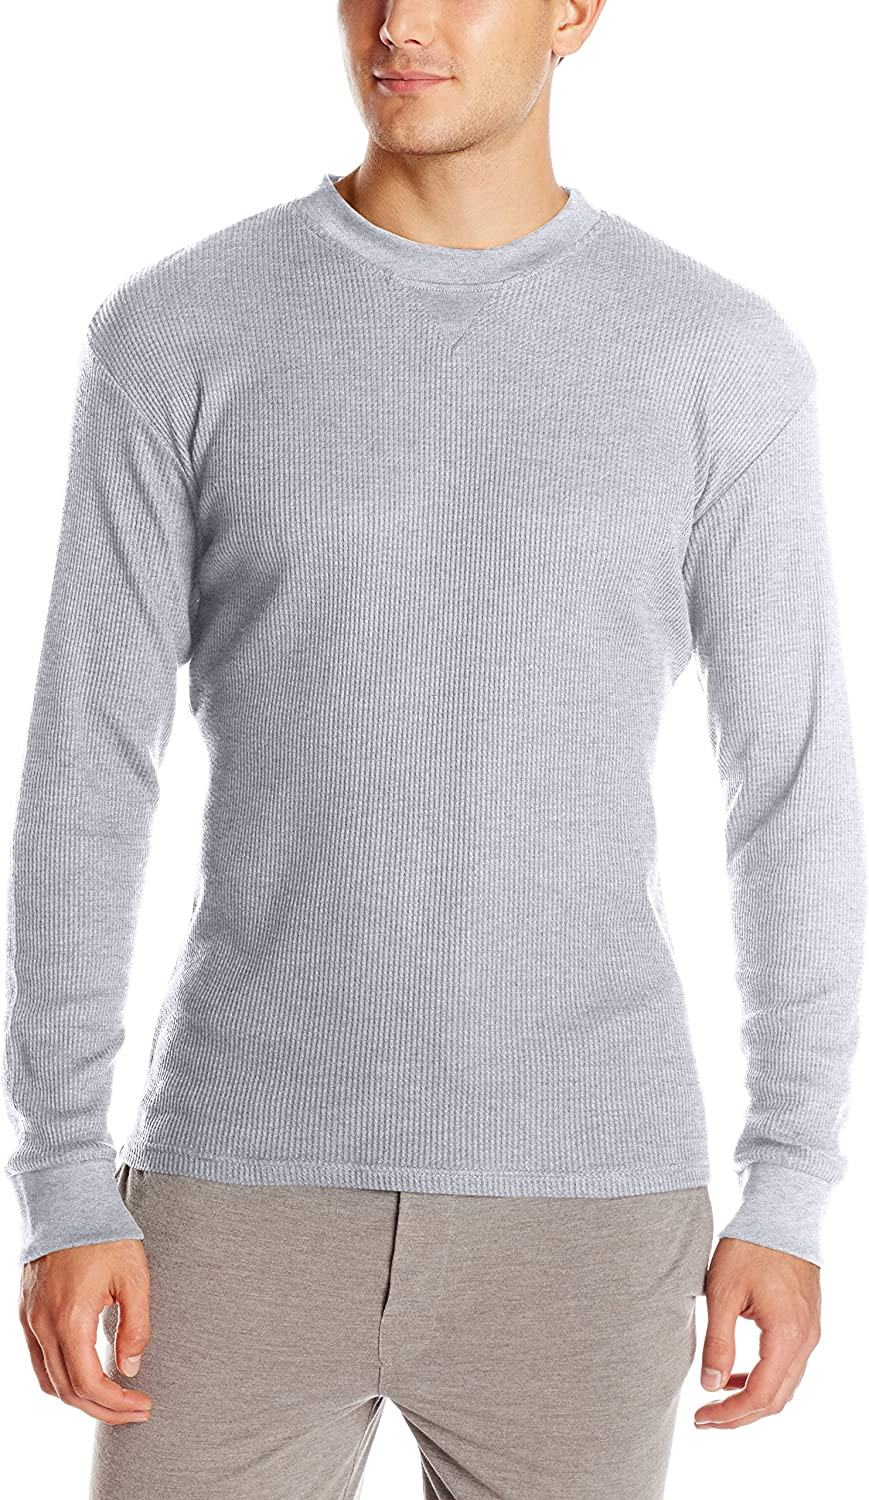 Essentials by Seven Apparel Men's Thermal Crew Neck Shirt